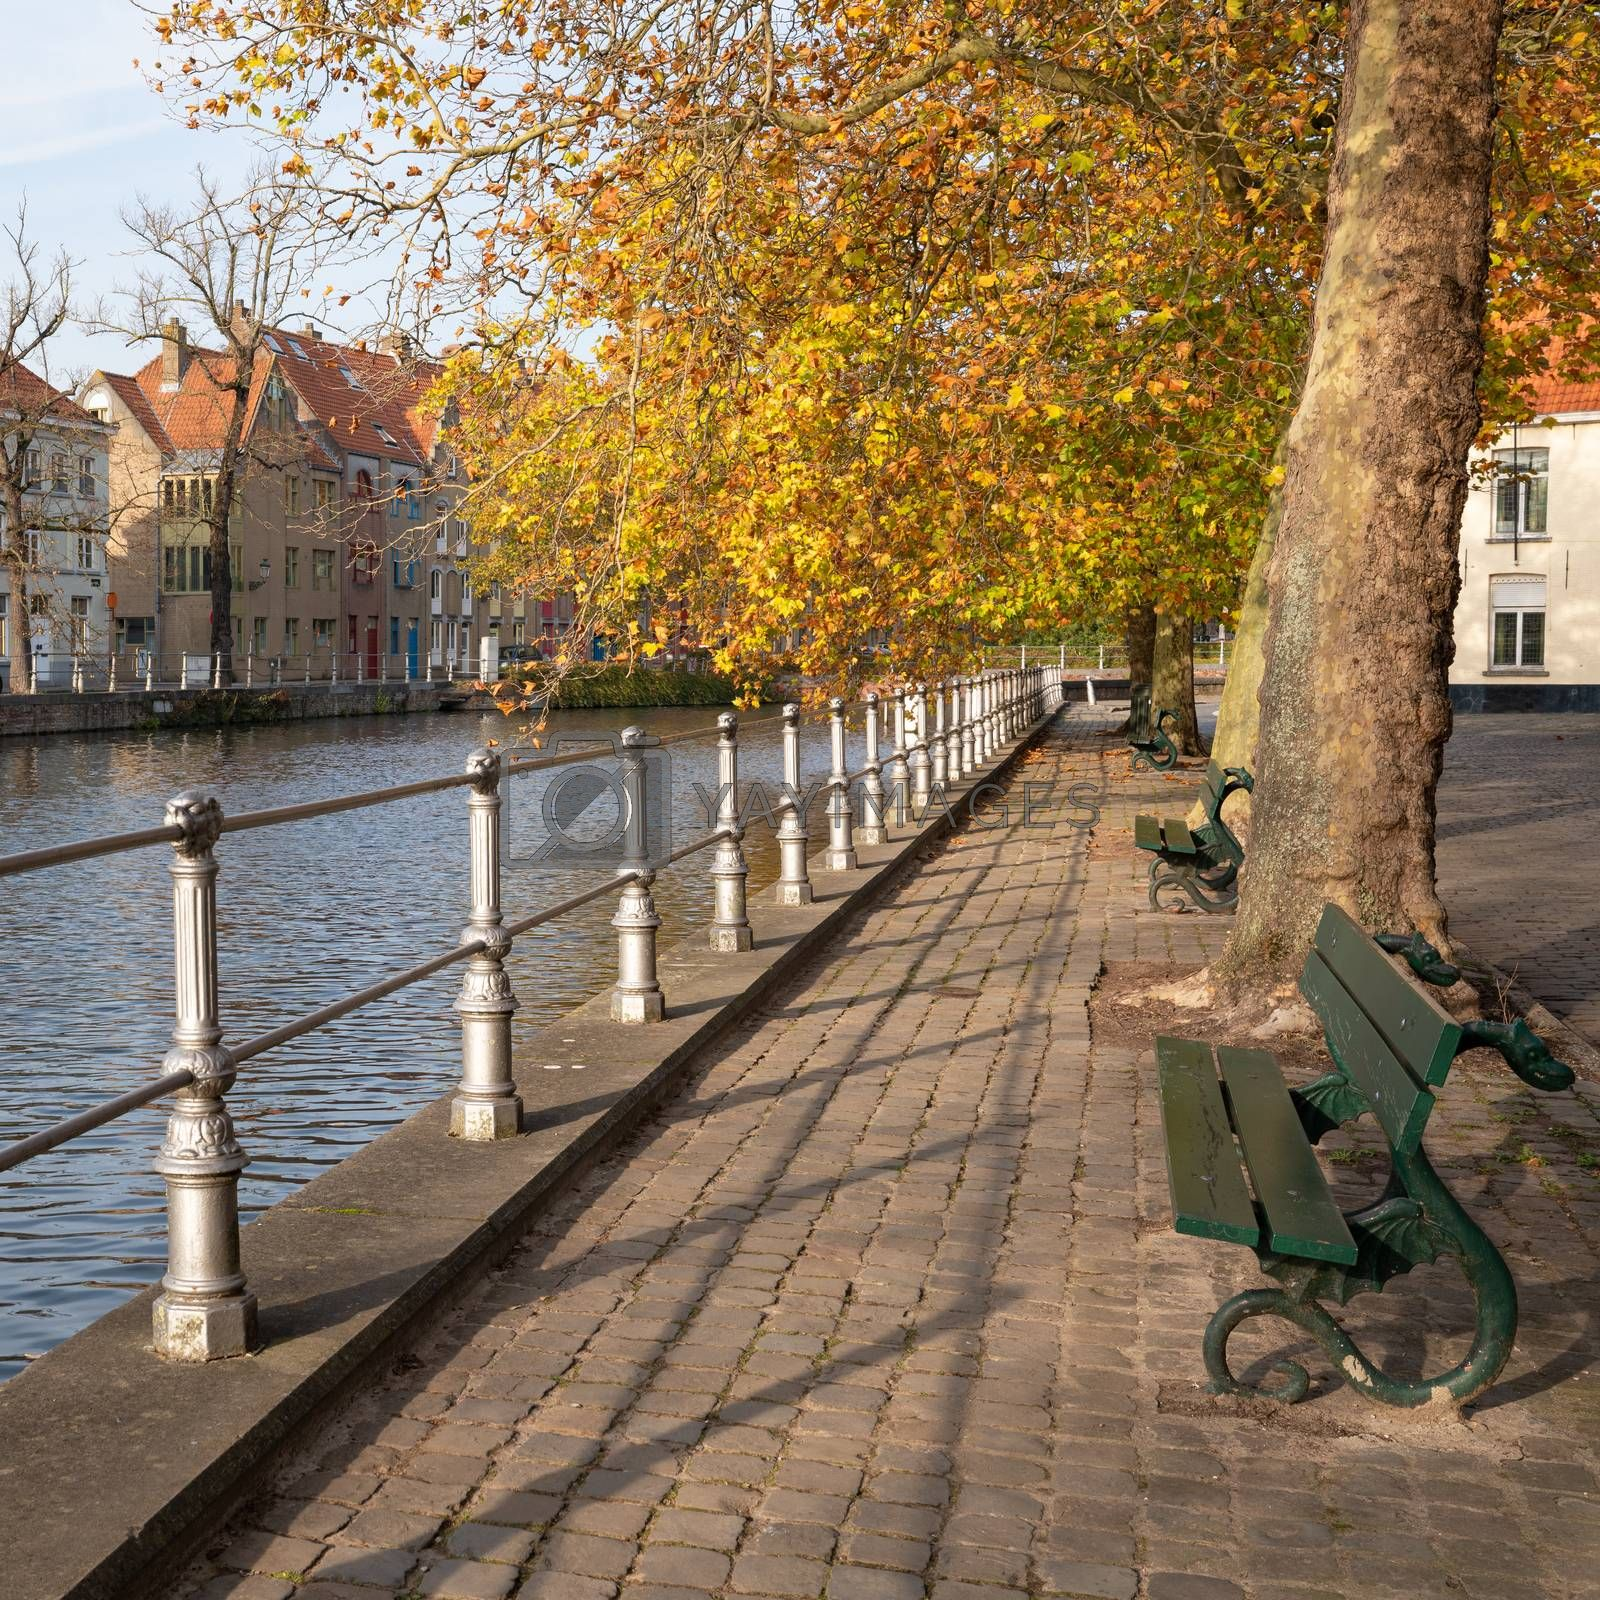 Benches close to the canals of Bruges under colorful trees, Belgium